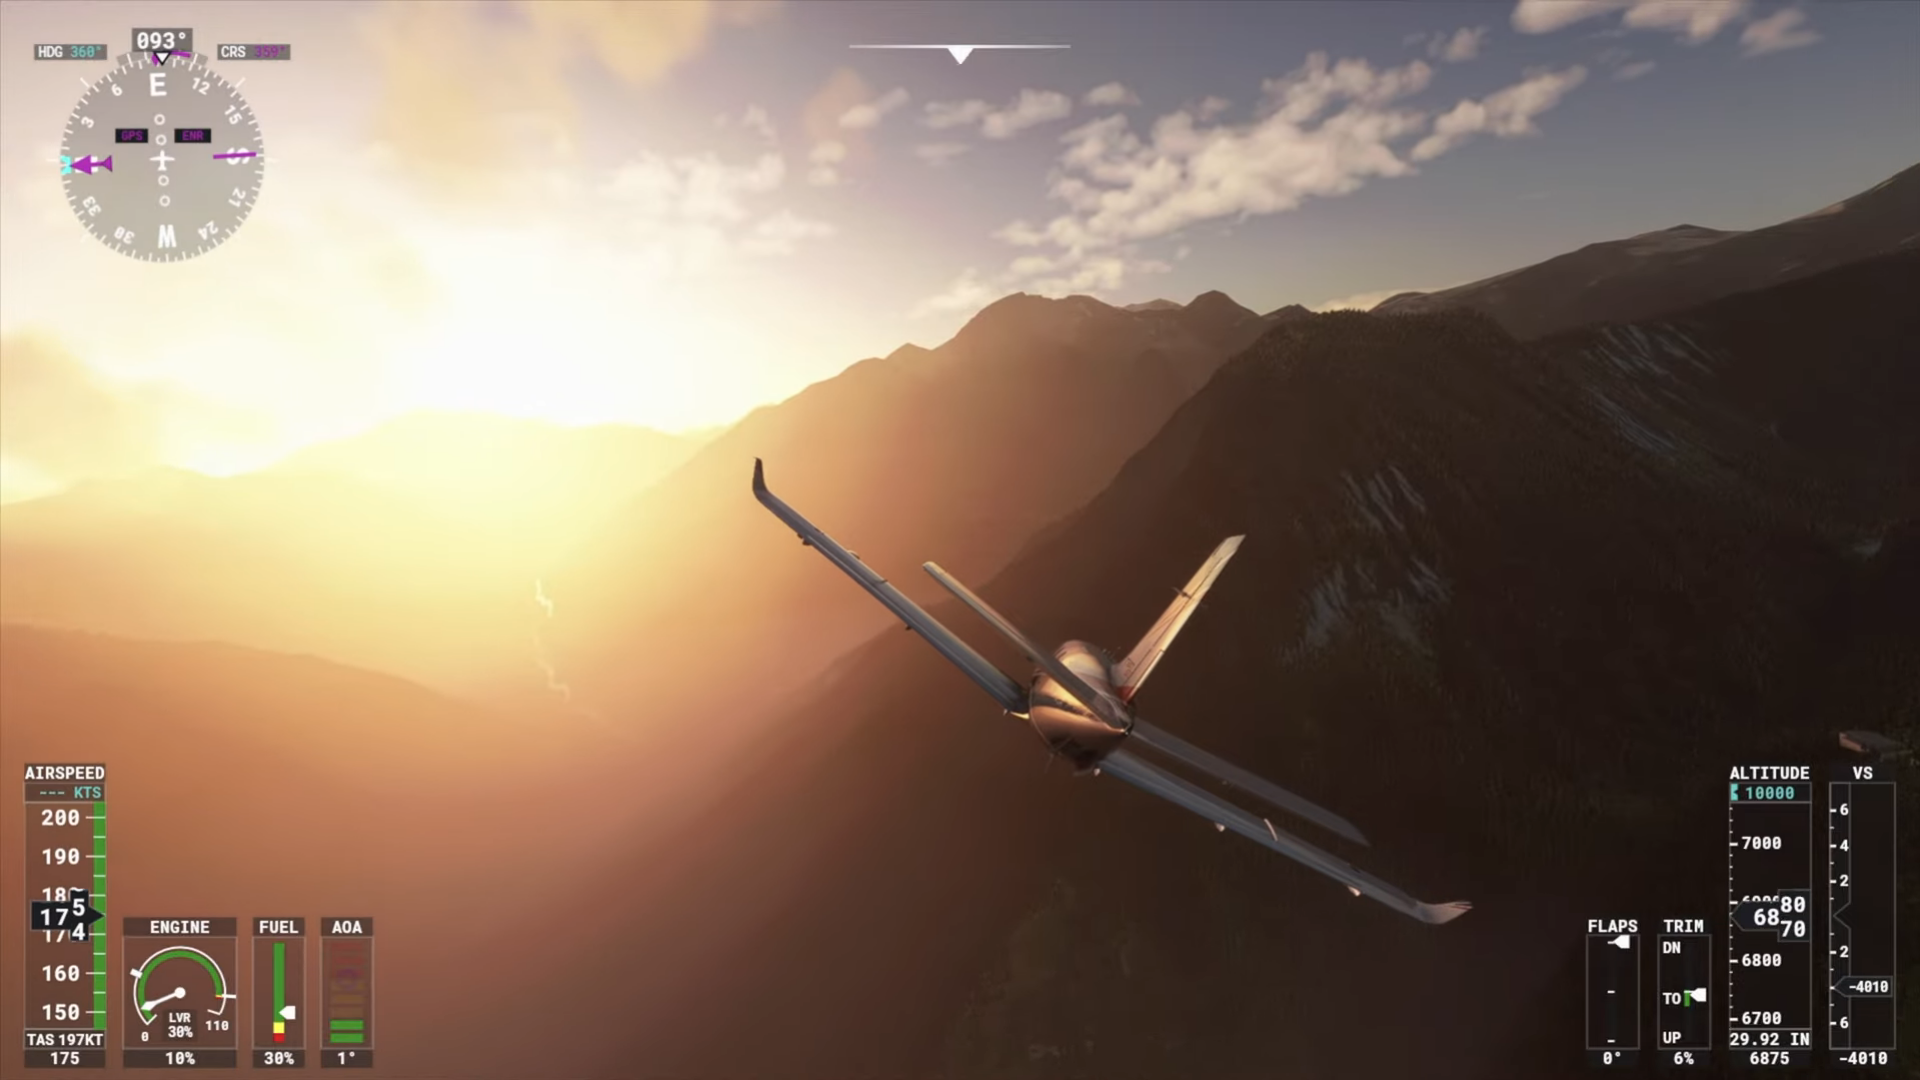 A screenshot of a small aircraft shown from behind flying over mountains.